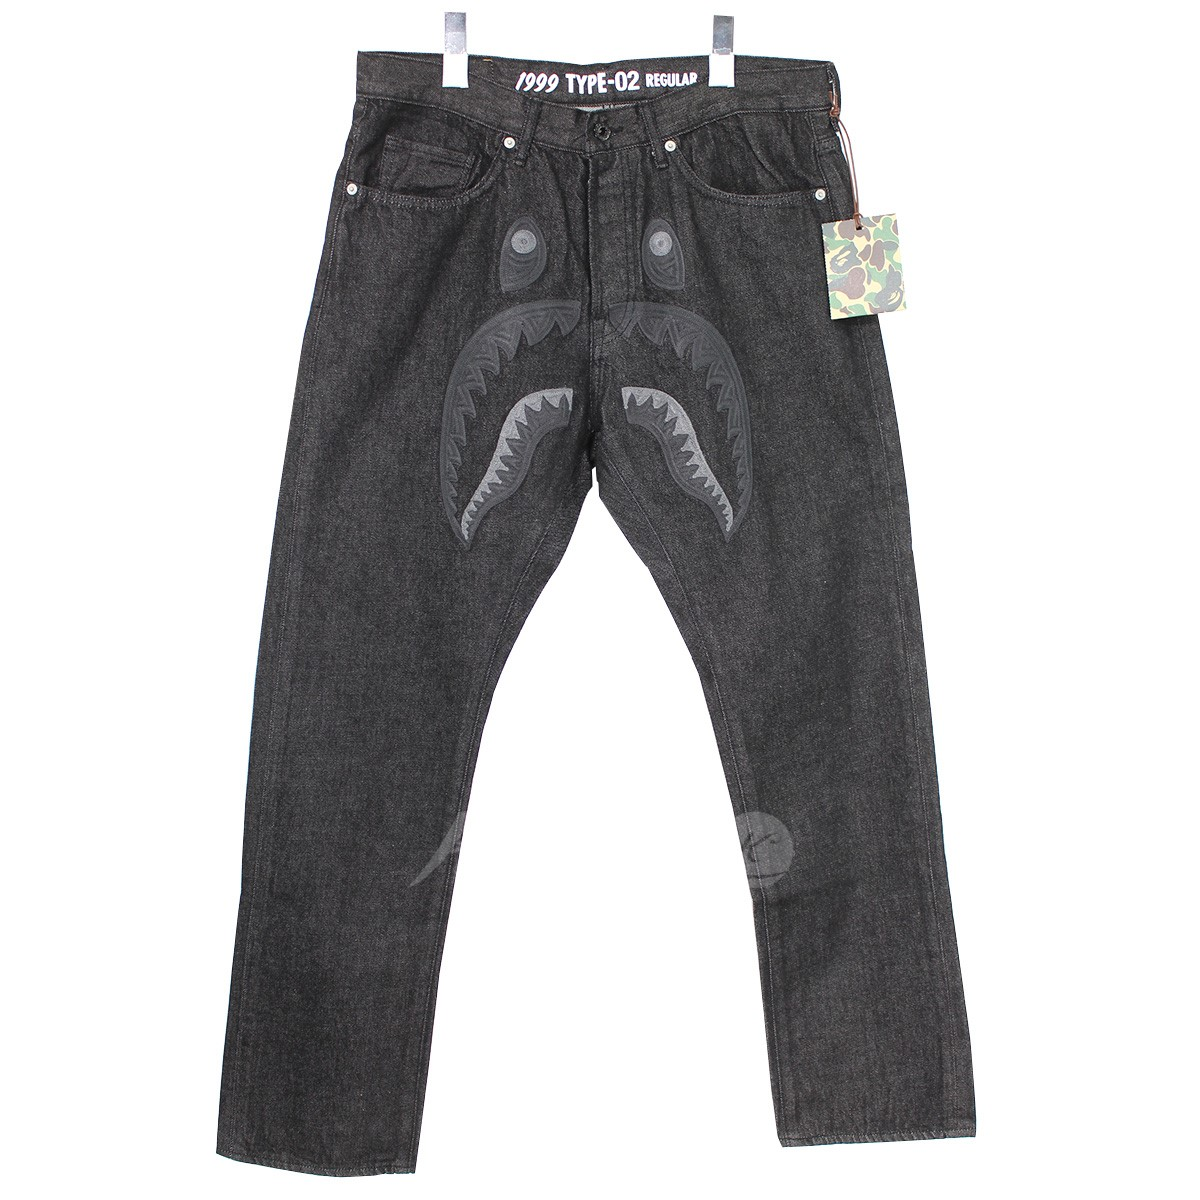 【中古】A BATHING APE 1999 TYPE-02 SHARK BLACK DENIM PANTS シャークデニムパンツ 【送料無料】 【001502】 【KJ1368】